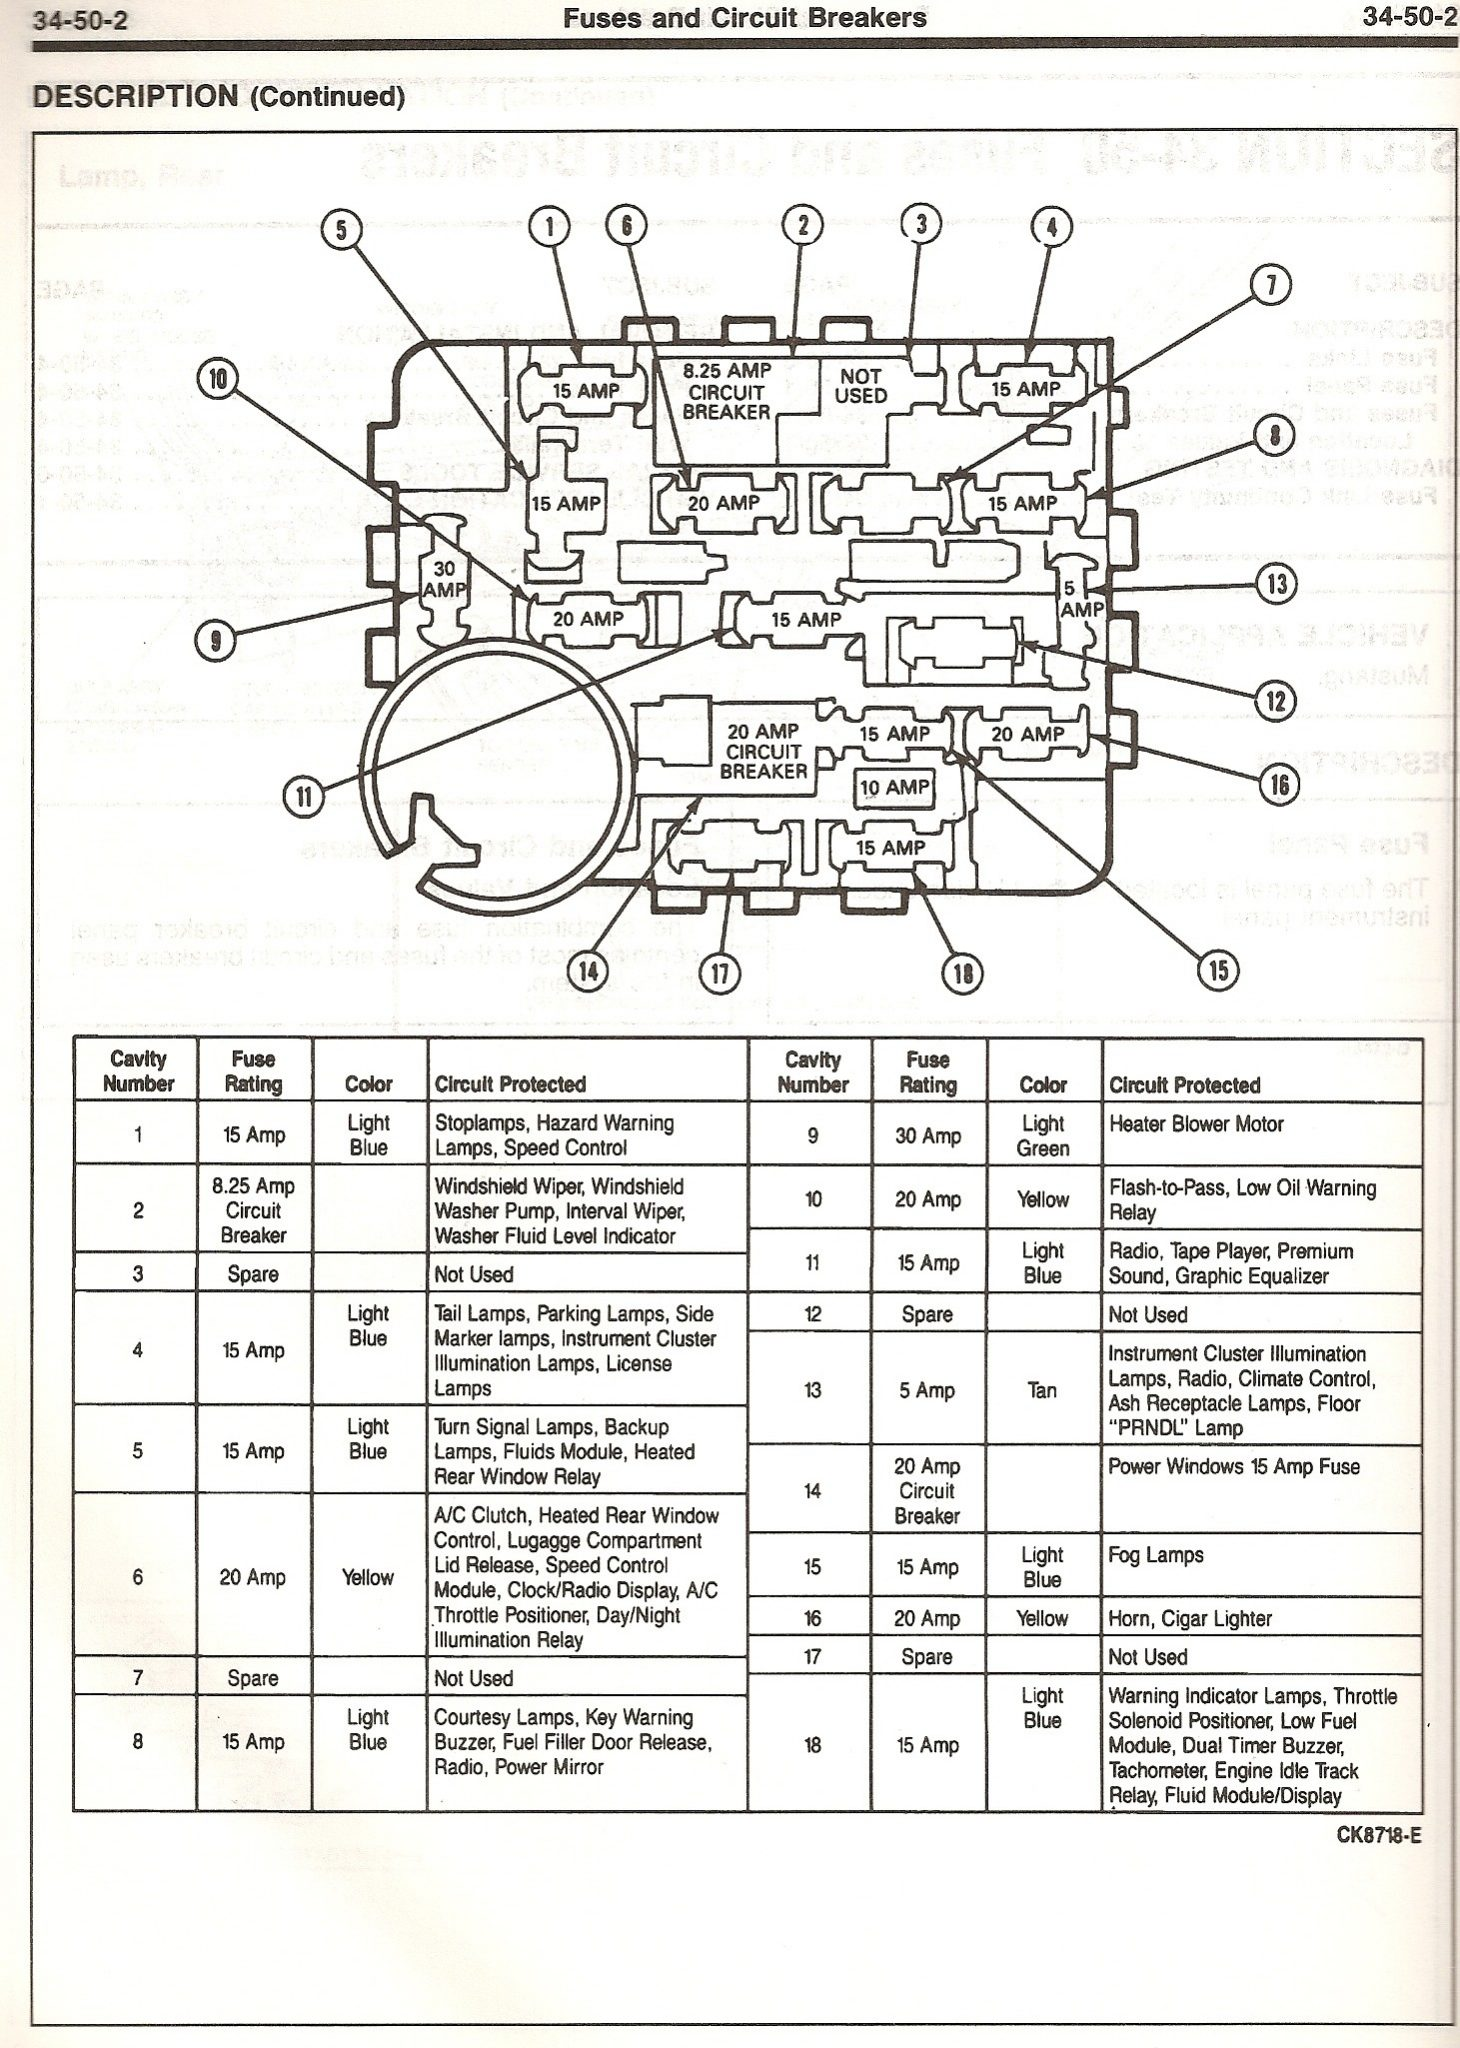 1984 Ford F 250 Fuse Box Diagram | Wiring Schematic Diagram  F Fuse Box Wiring Diagram on